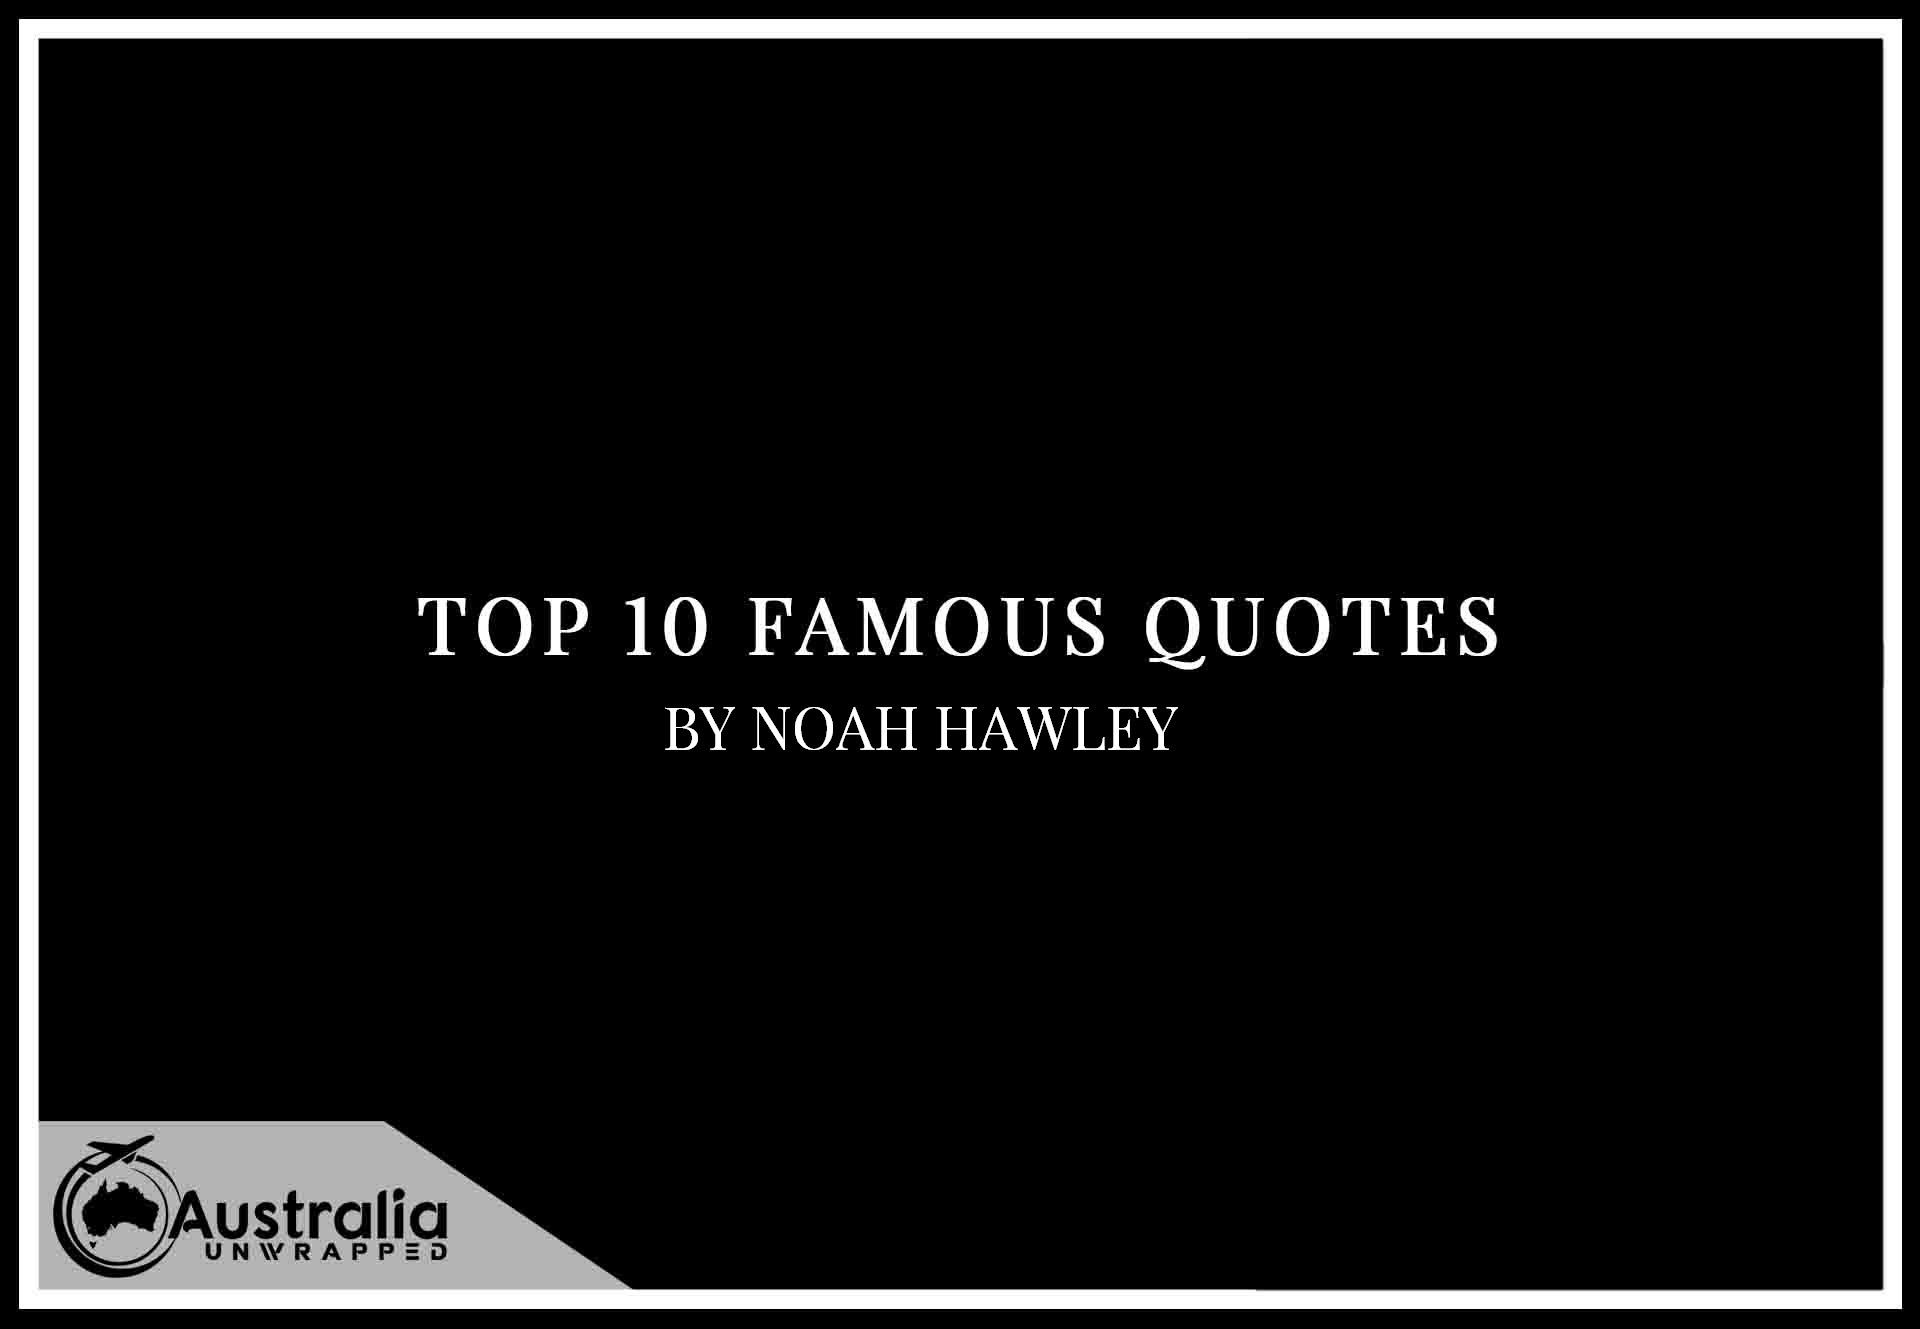 Top 10 Famous Quotes by Author Noah Hawley